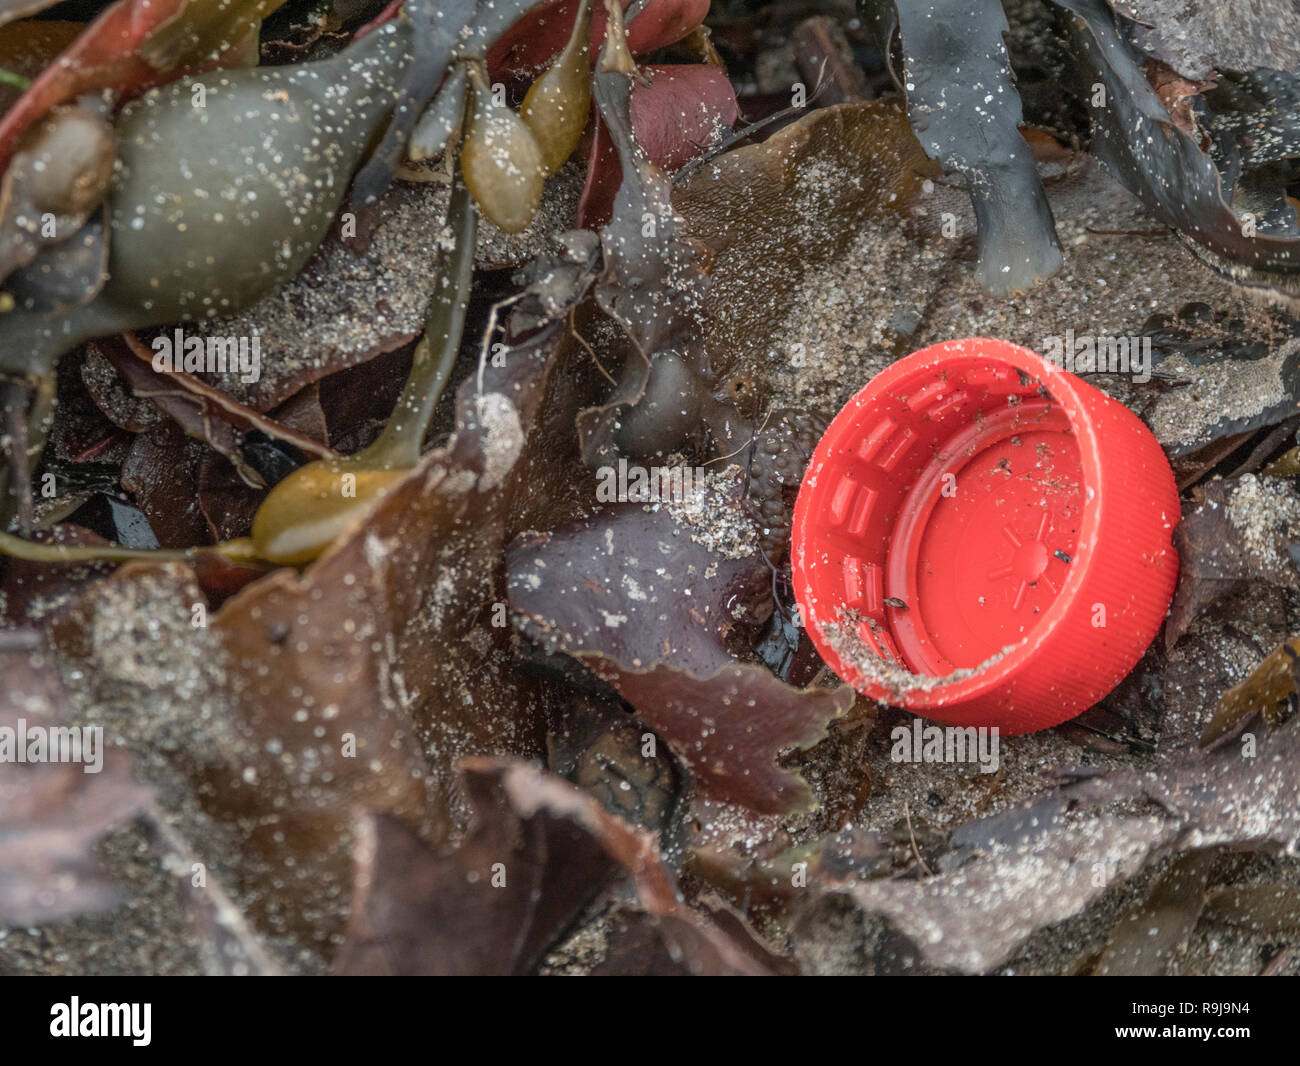 Part of plastic bottle washed up on shore & polluting shoreline. Metaphor plastic pollution, environmental pollution, war on plastic, plastic rubbish. - Stock Image